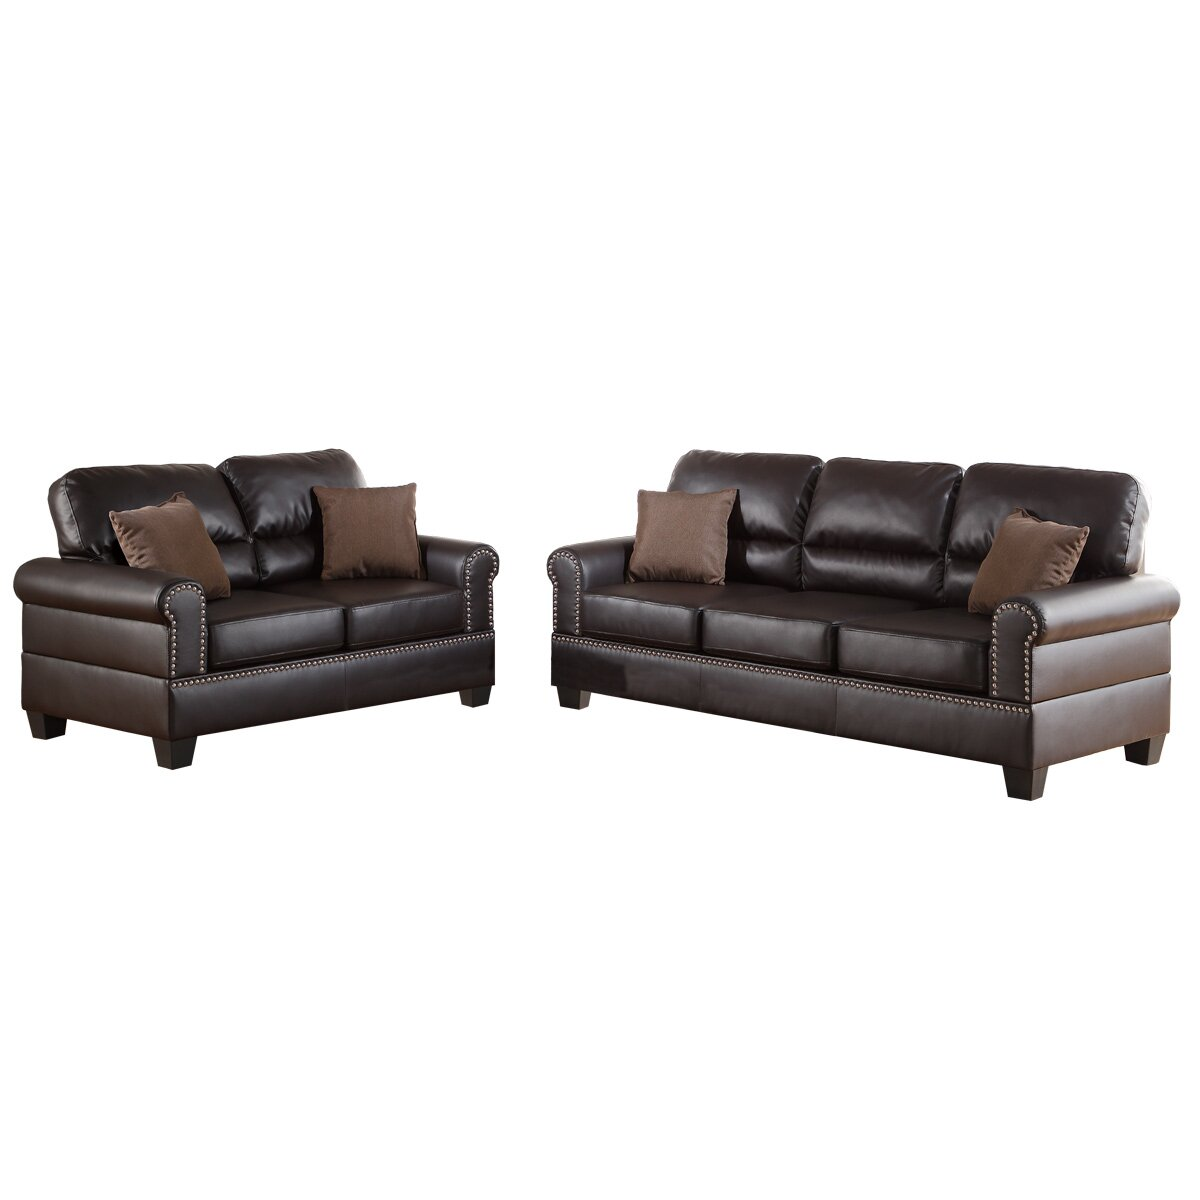 Charlton home boyster 2 piece sofa and loveseat set for 2 piece furniture set